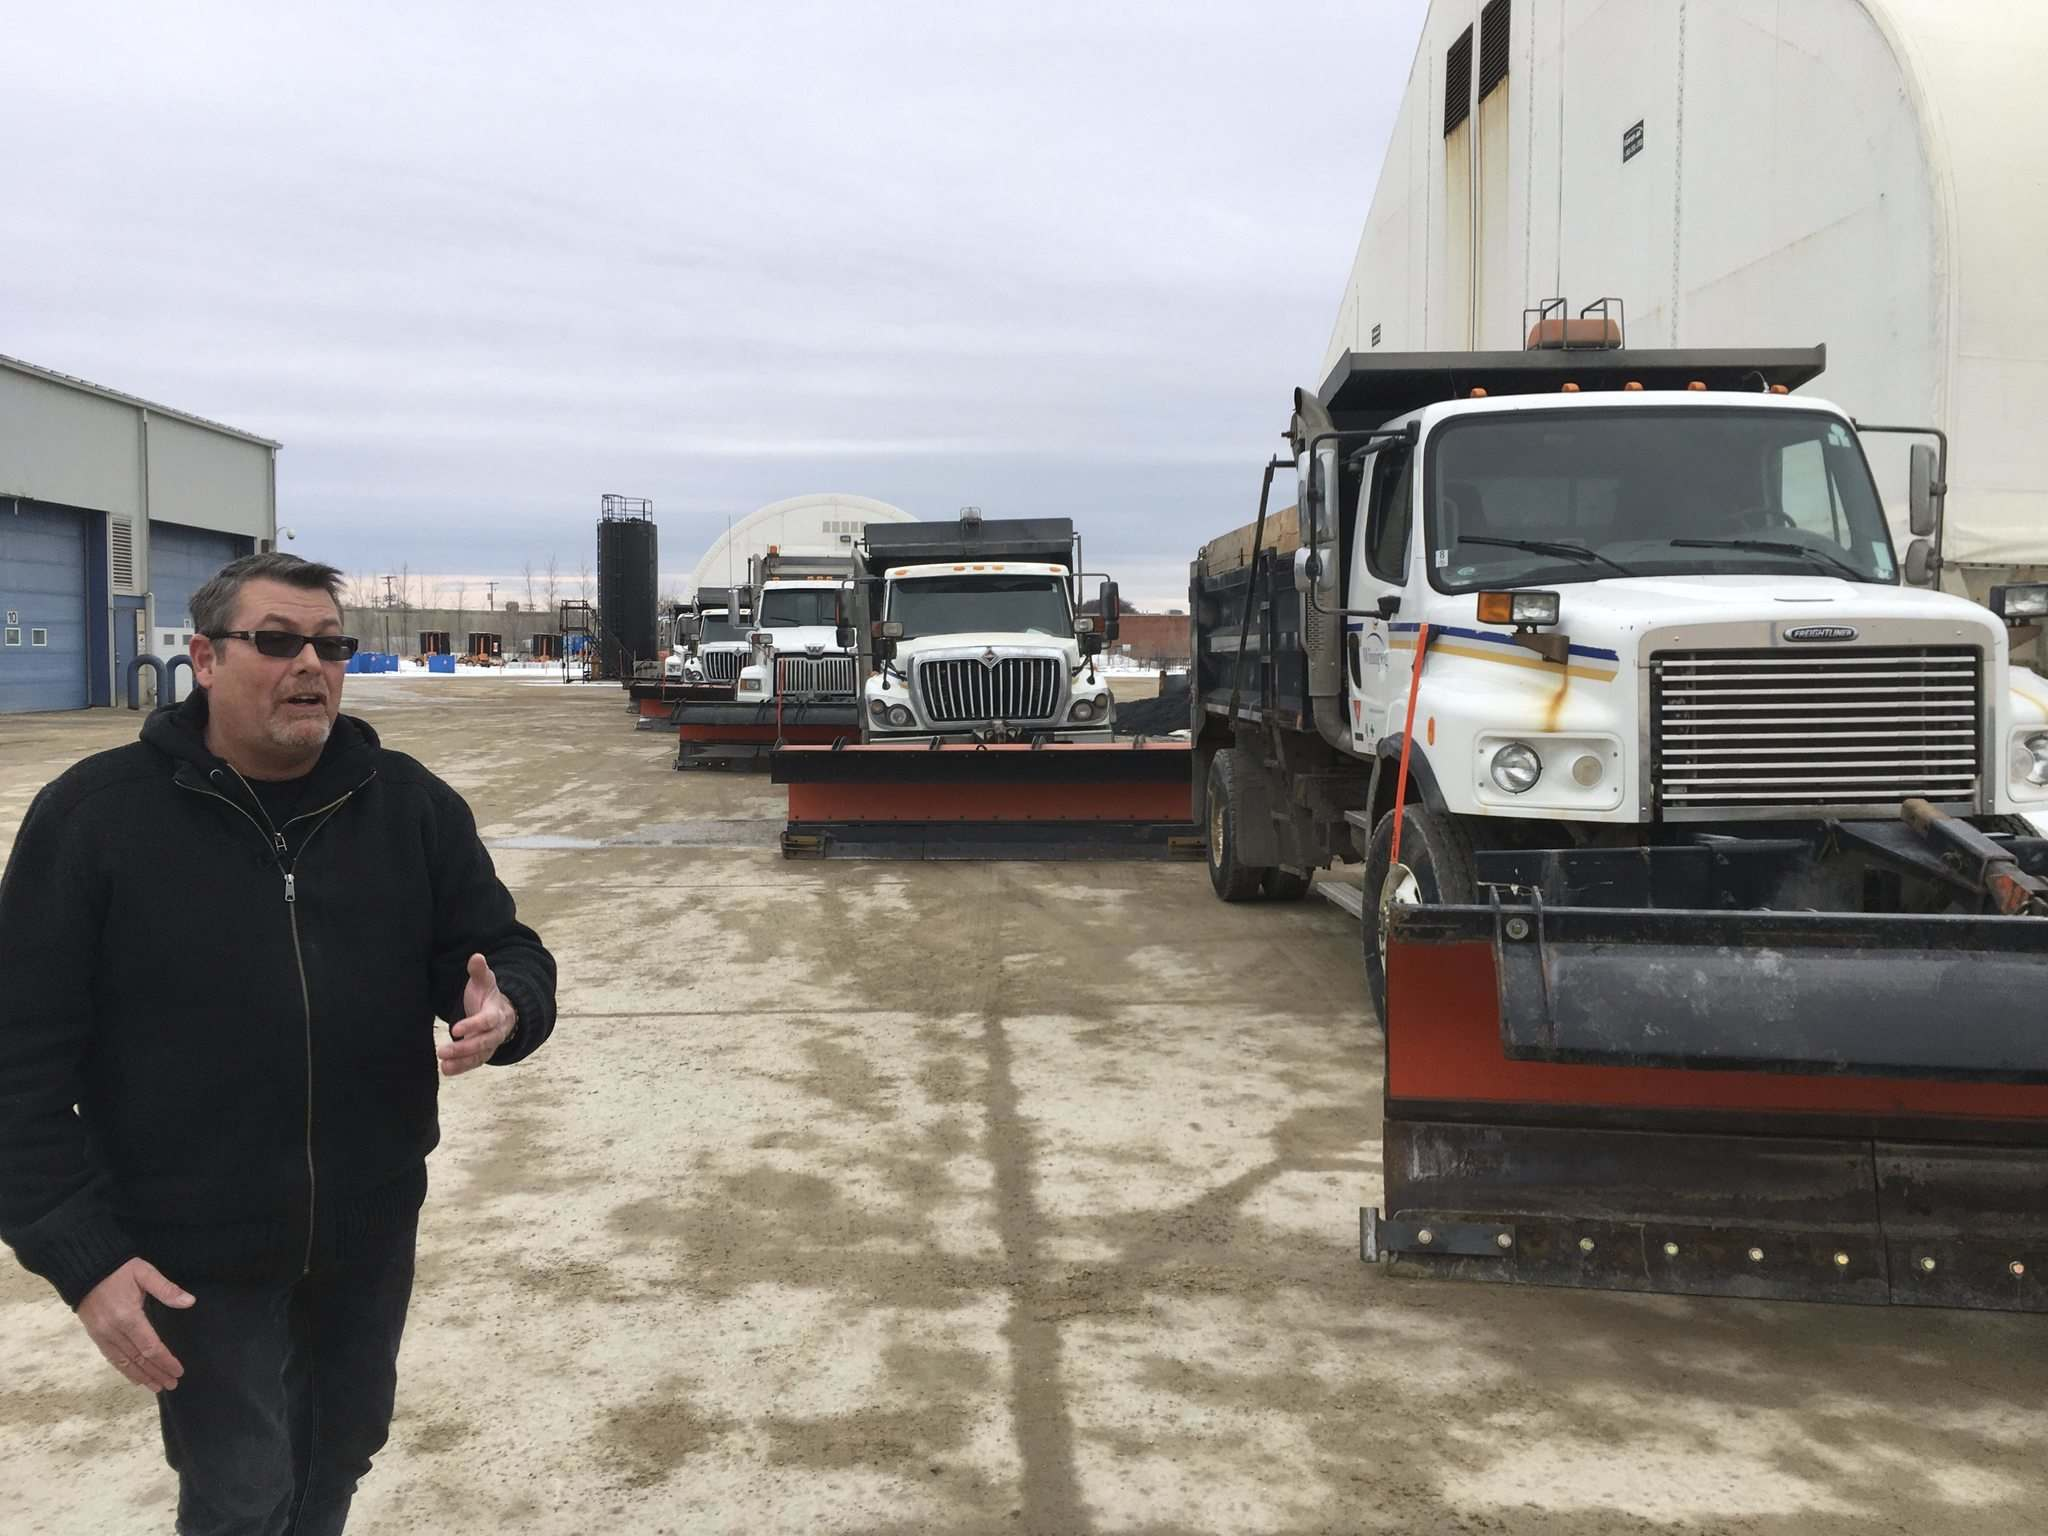 City of Winnipeg public works spokesman Ken Allen says crews are ready to hit the road when the Colorado Low passes through.</p>